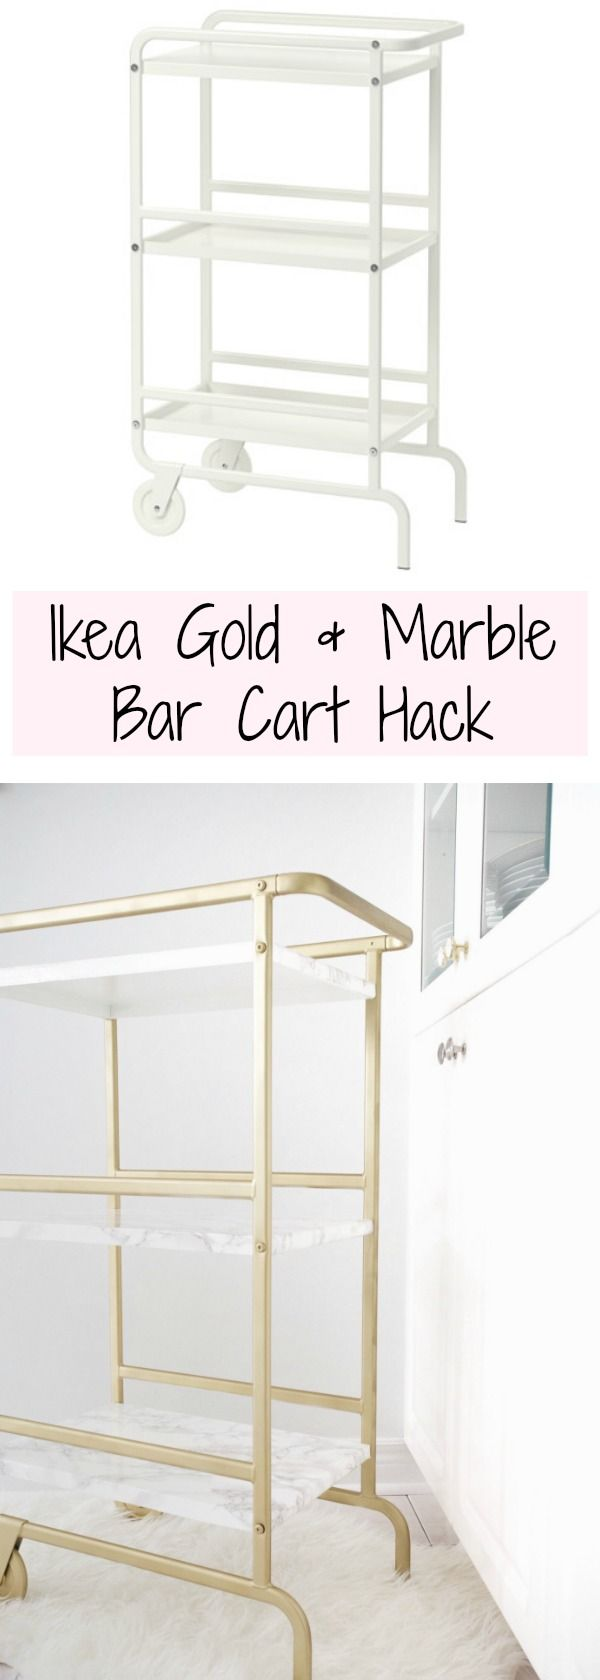 Turn this plain white kitchen cart into a gold and marble dream bar cart!